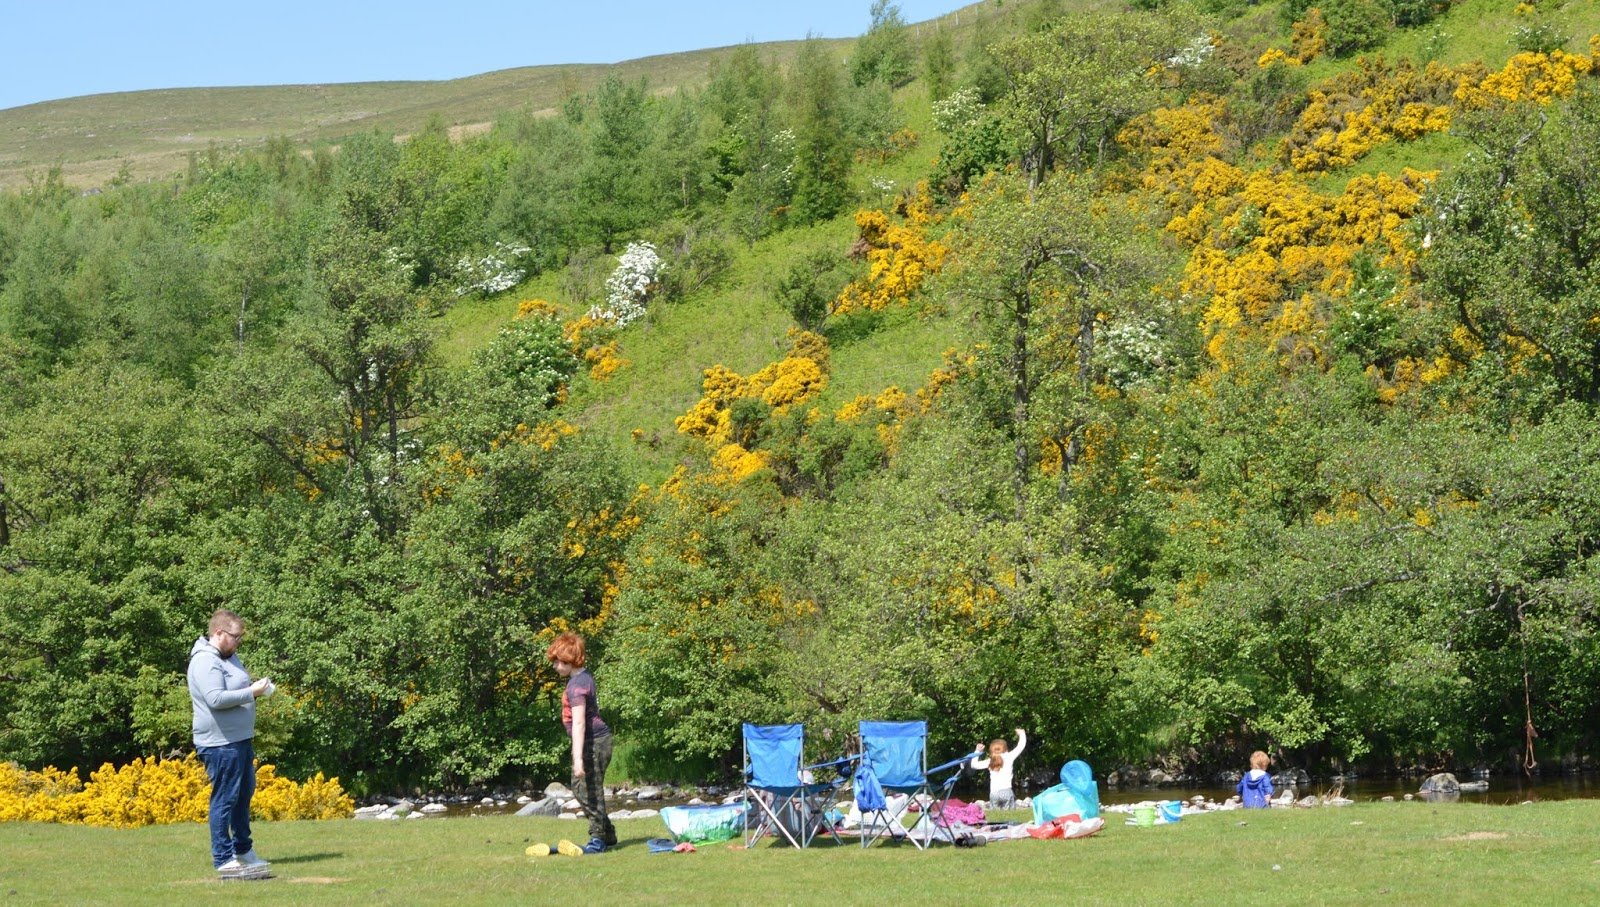 5 of the Best Family Picnic Spots in North East England   #EnglishTourismWeek19 - Ingram Valley